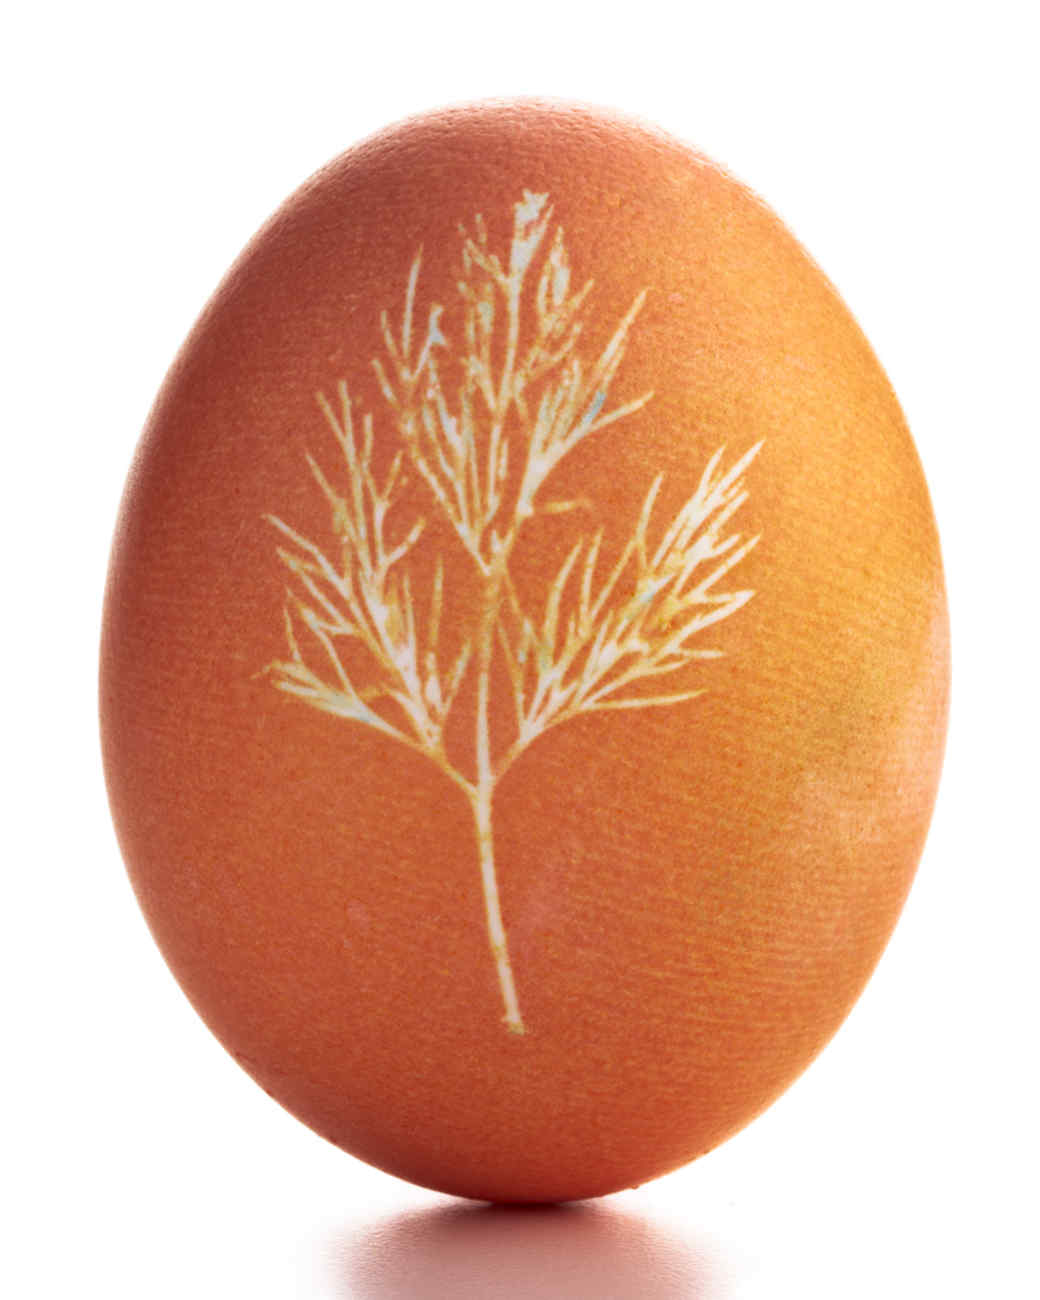 egg-dyeing-app-d107182-masking-orange-botanical0414.jpg